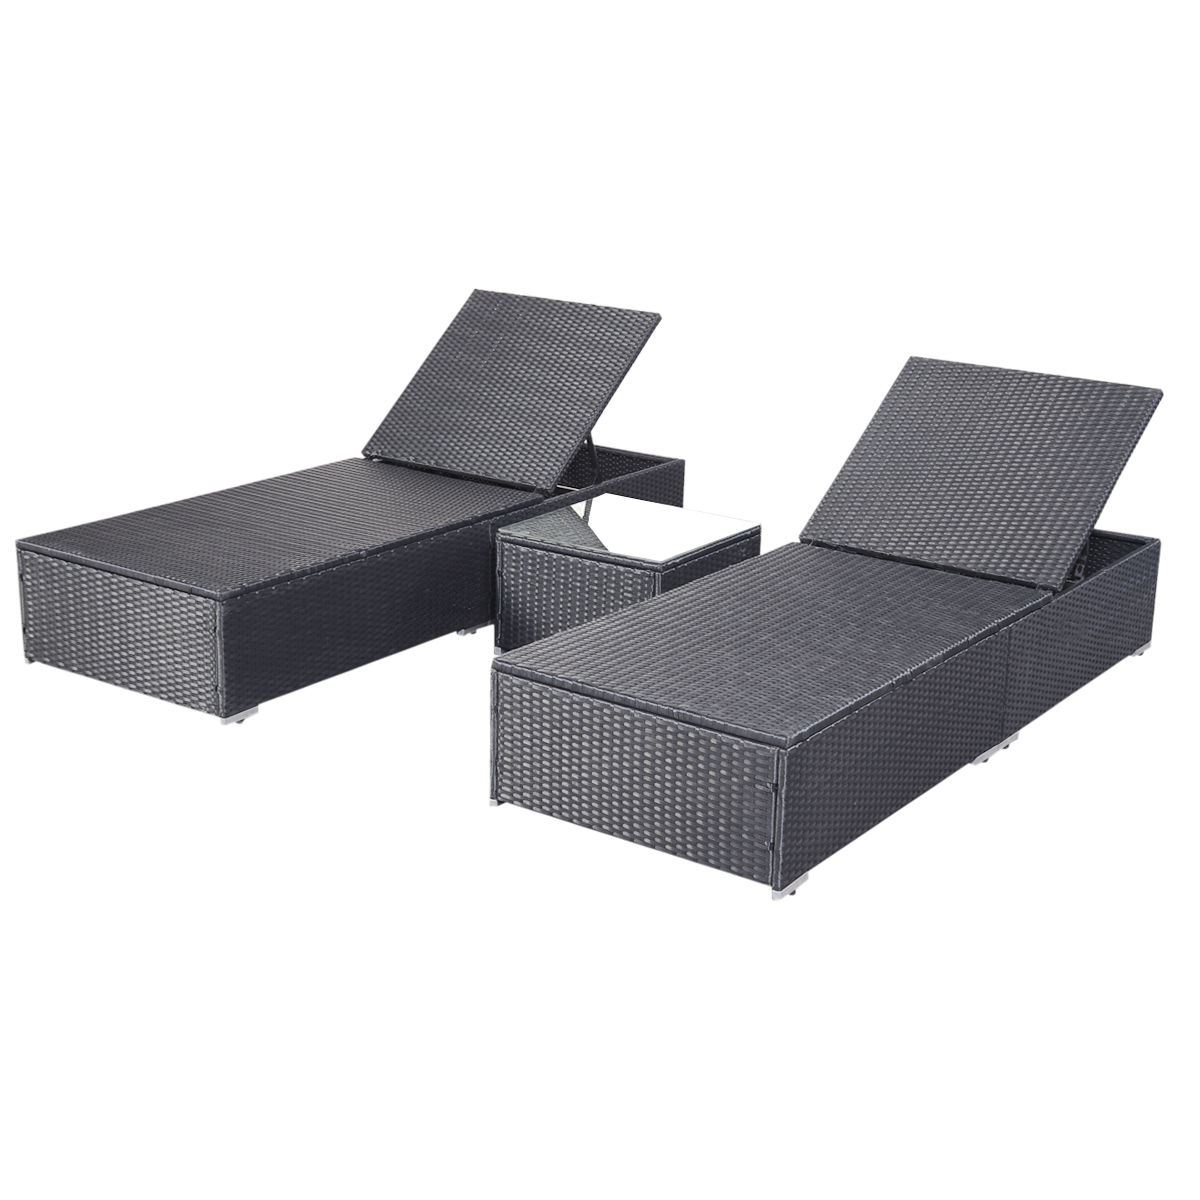 Outdoor Chaise Lounge Chairs Throughout Trendy Gym Equipment (View 11 of 15)